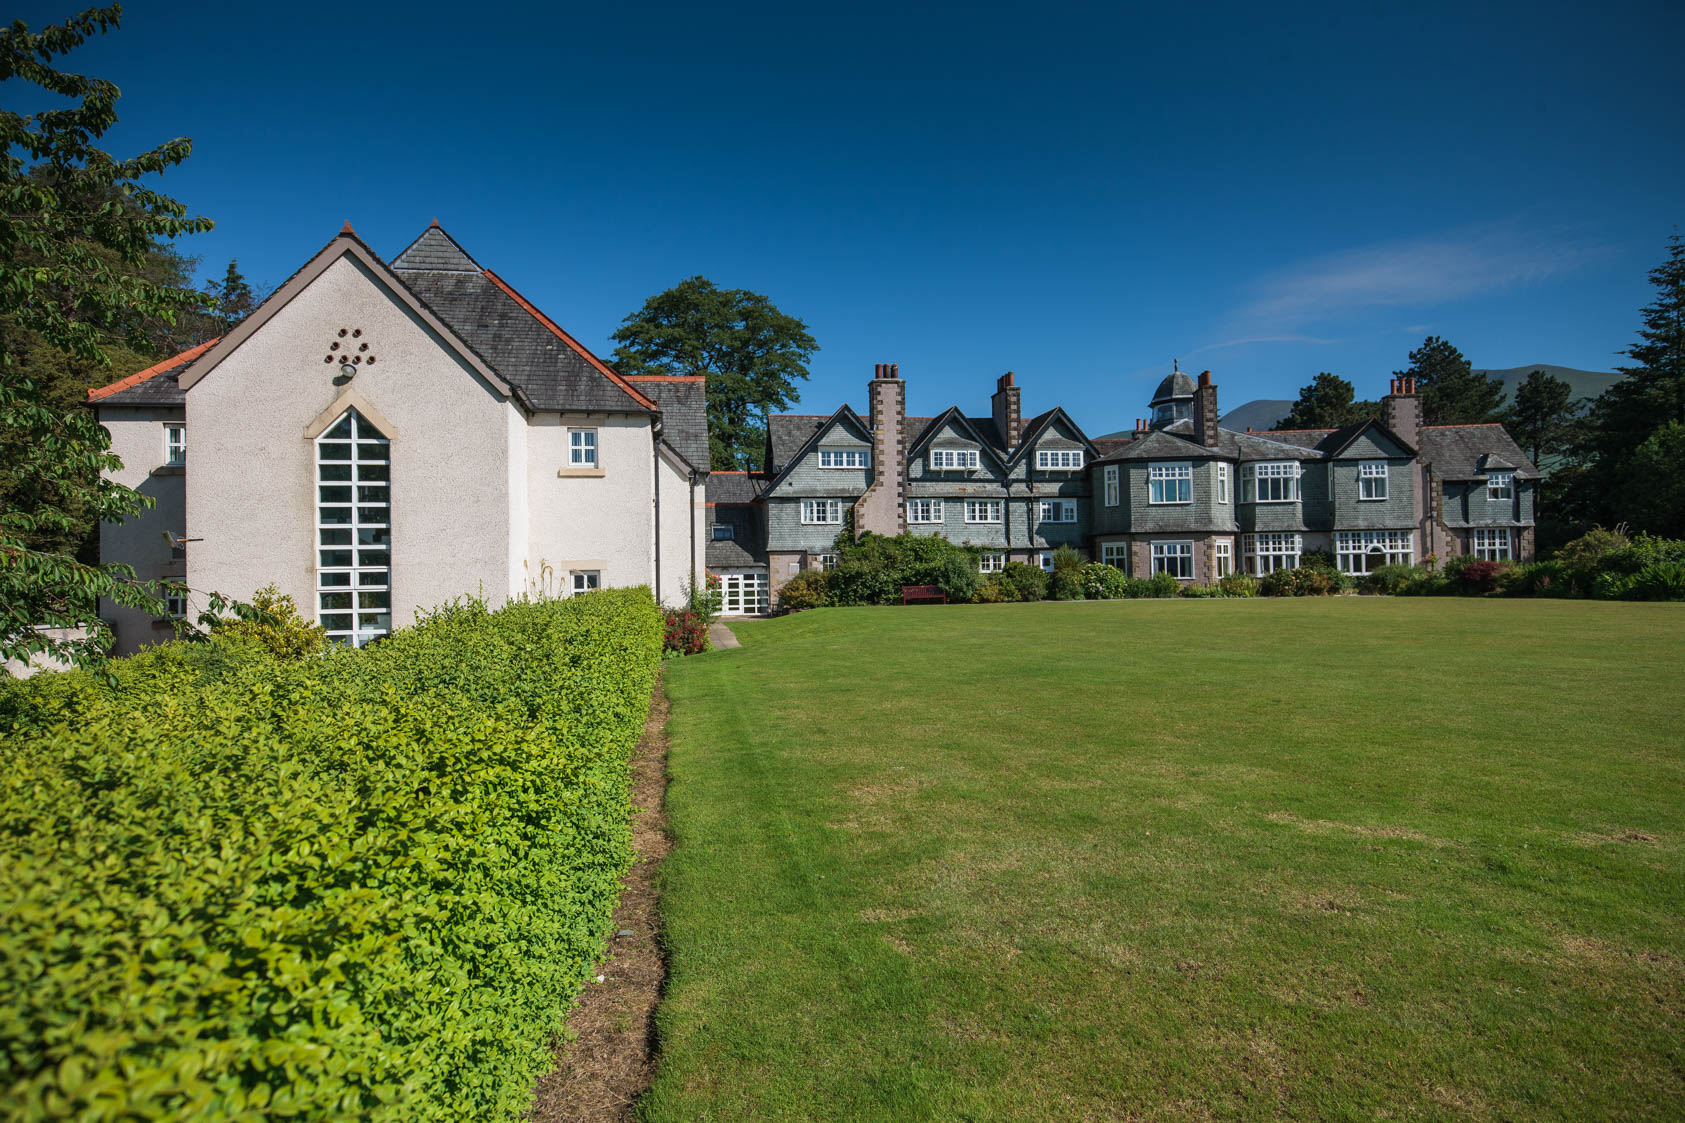 A sunny view of Derwent Hill and lawns